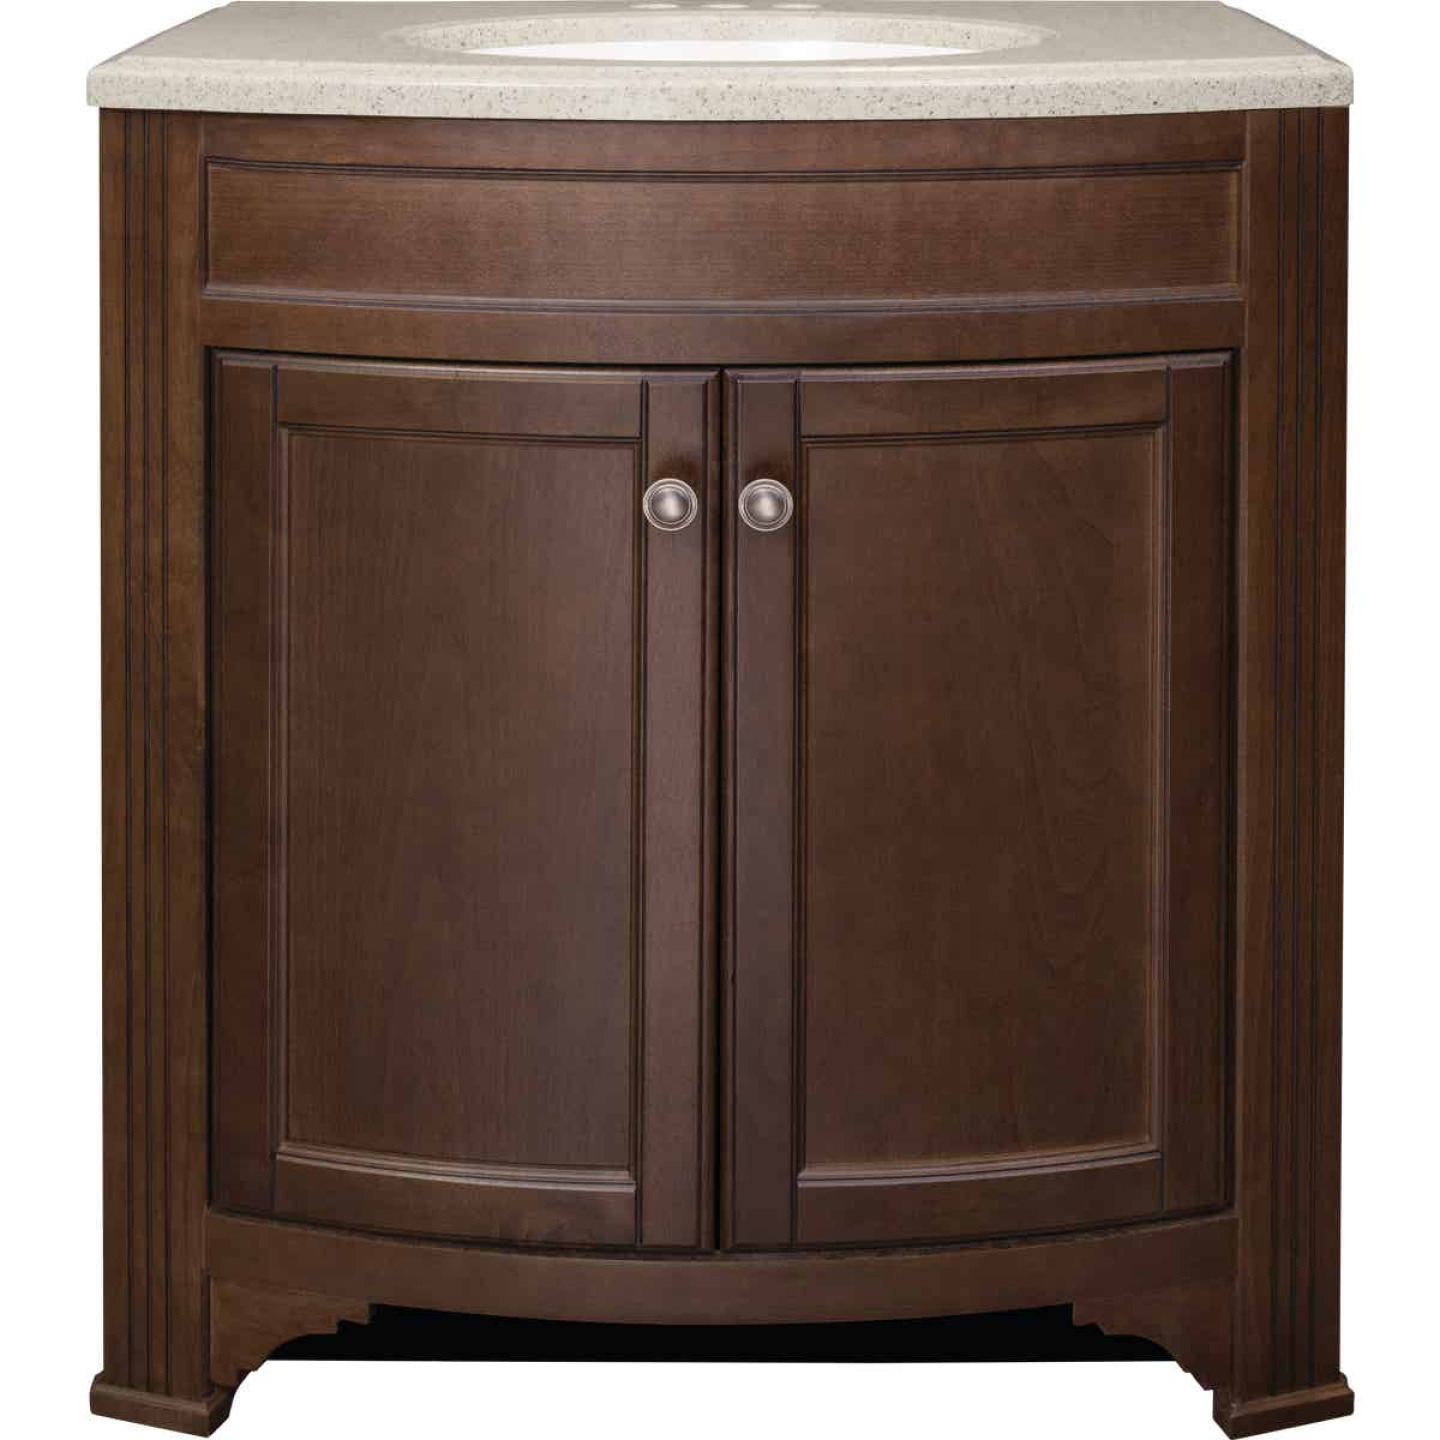 Continental Cabinets Duvall Cafe Black Glaze 30-3/4 In. W x 34-3/4 In. H x 18-1/2 In. D Vanity with Tan/Wht Cultured Marble Top Image 4